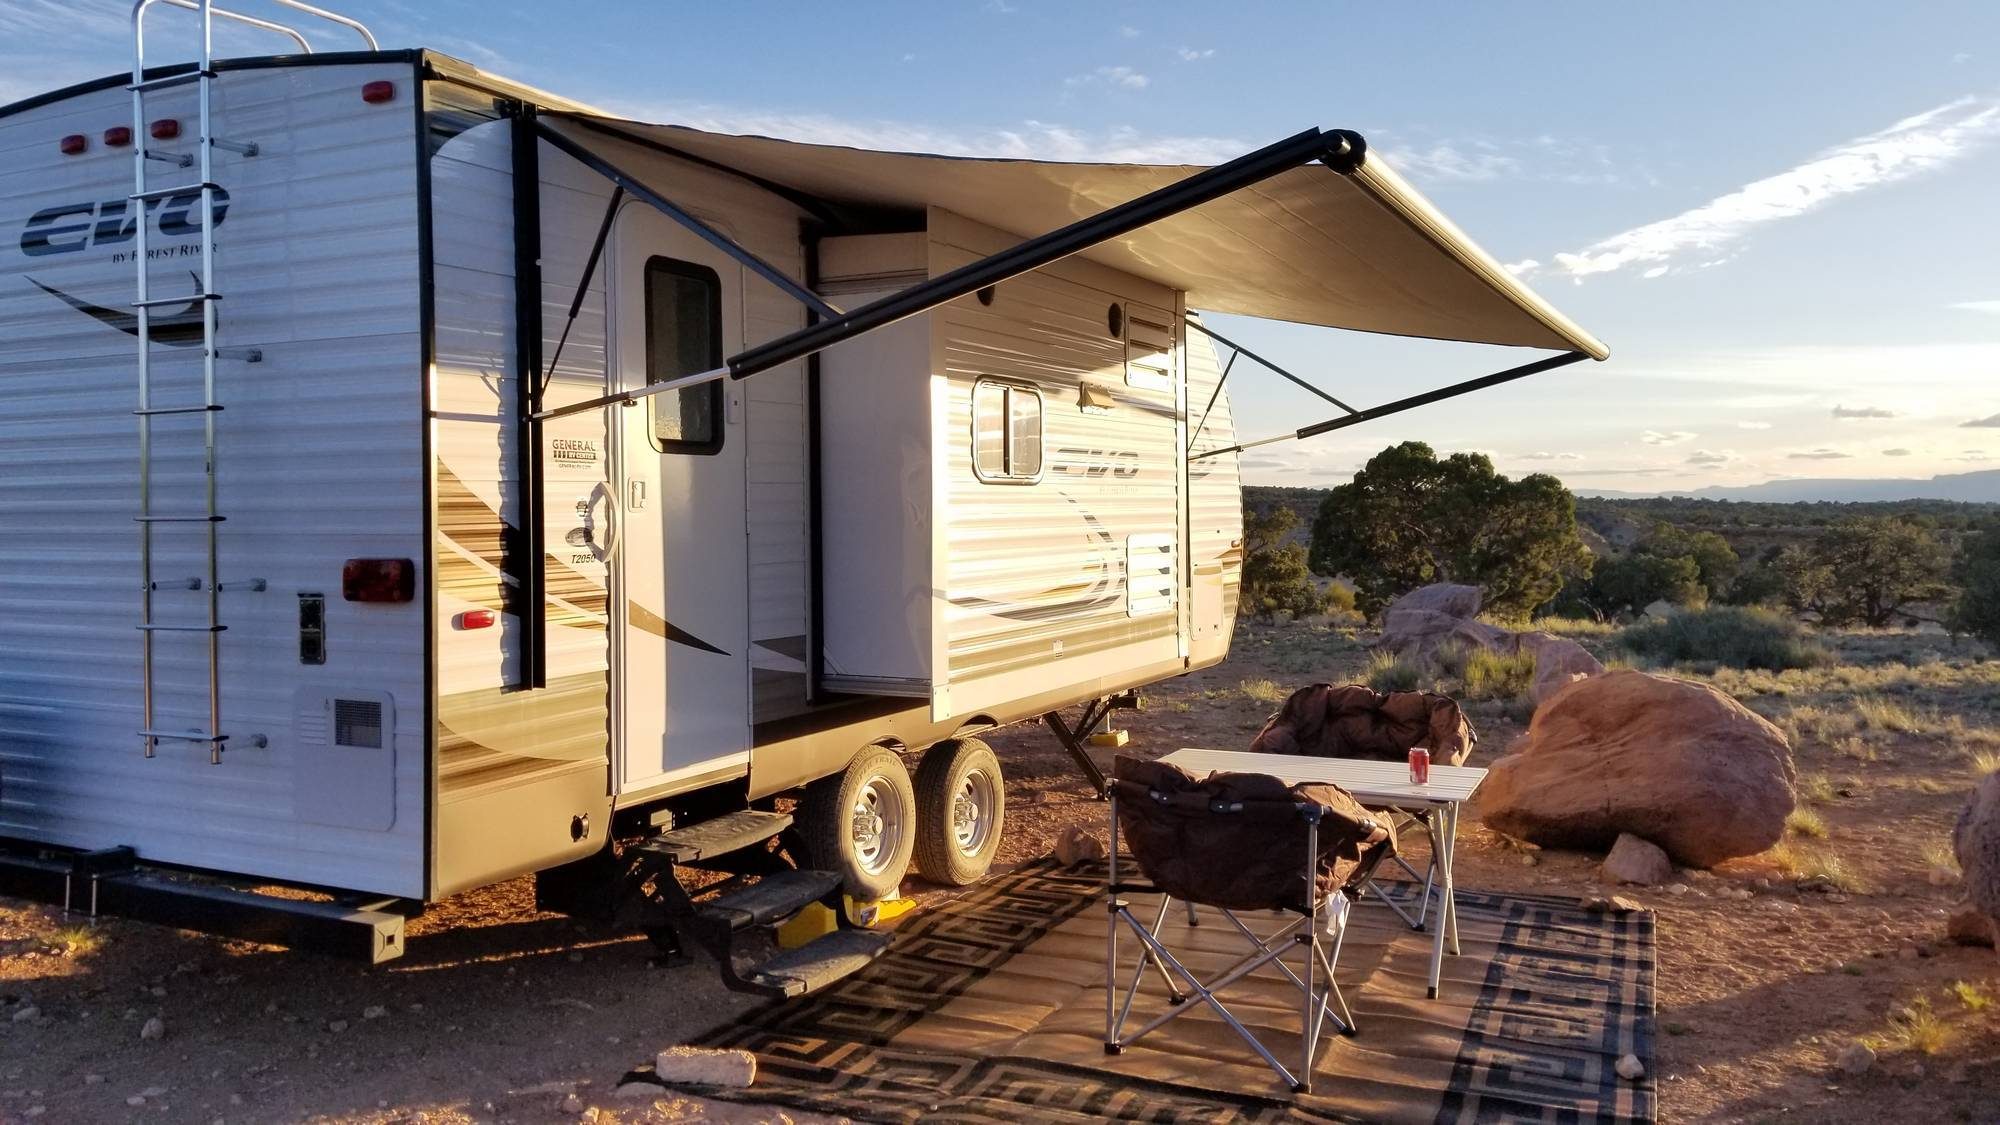 Boondocking on BLM land at The Wedge - San Rafael Swell, Utah